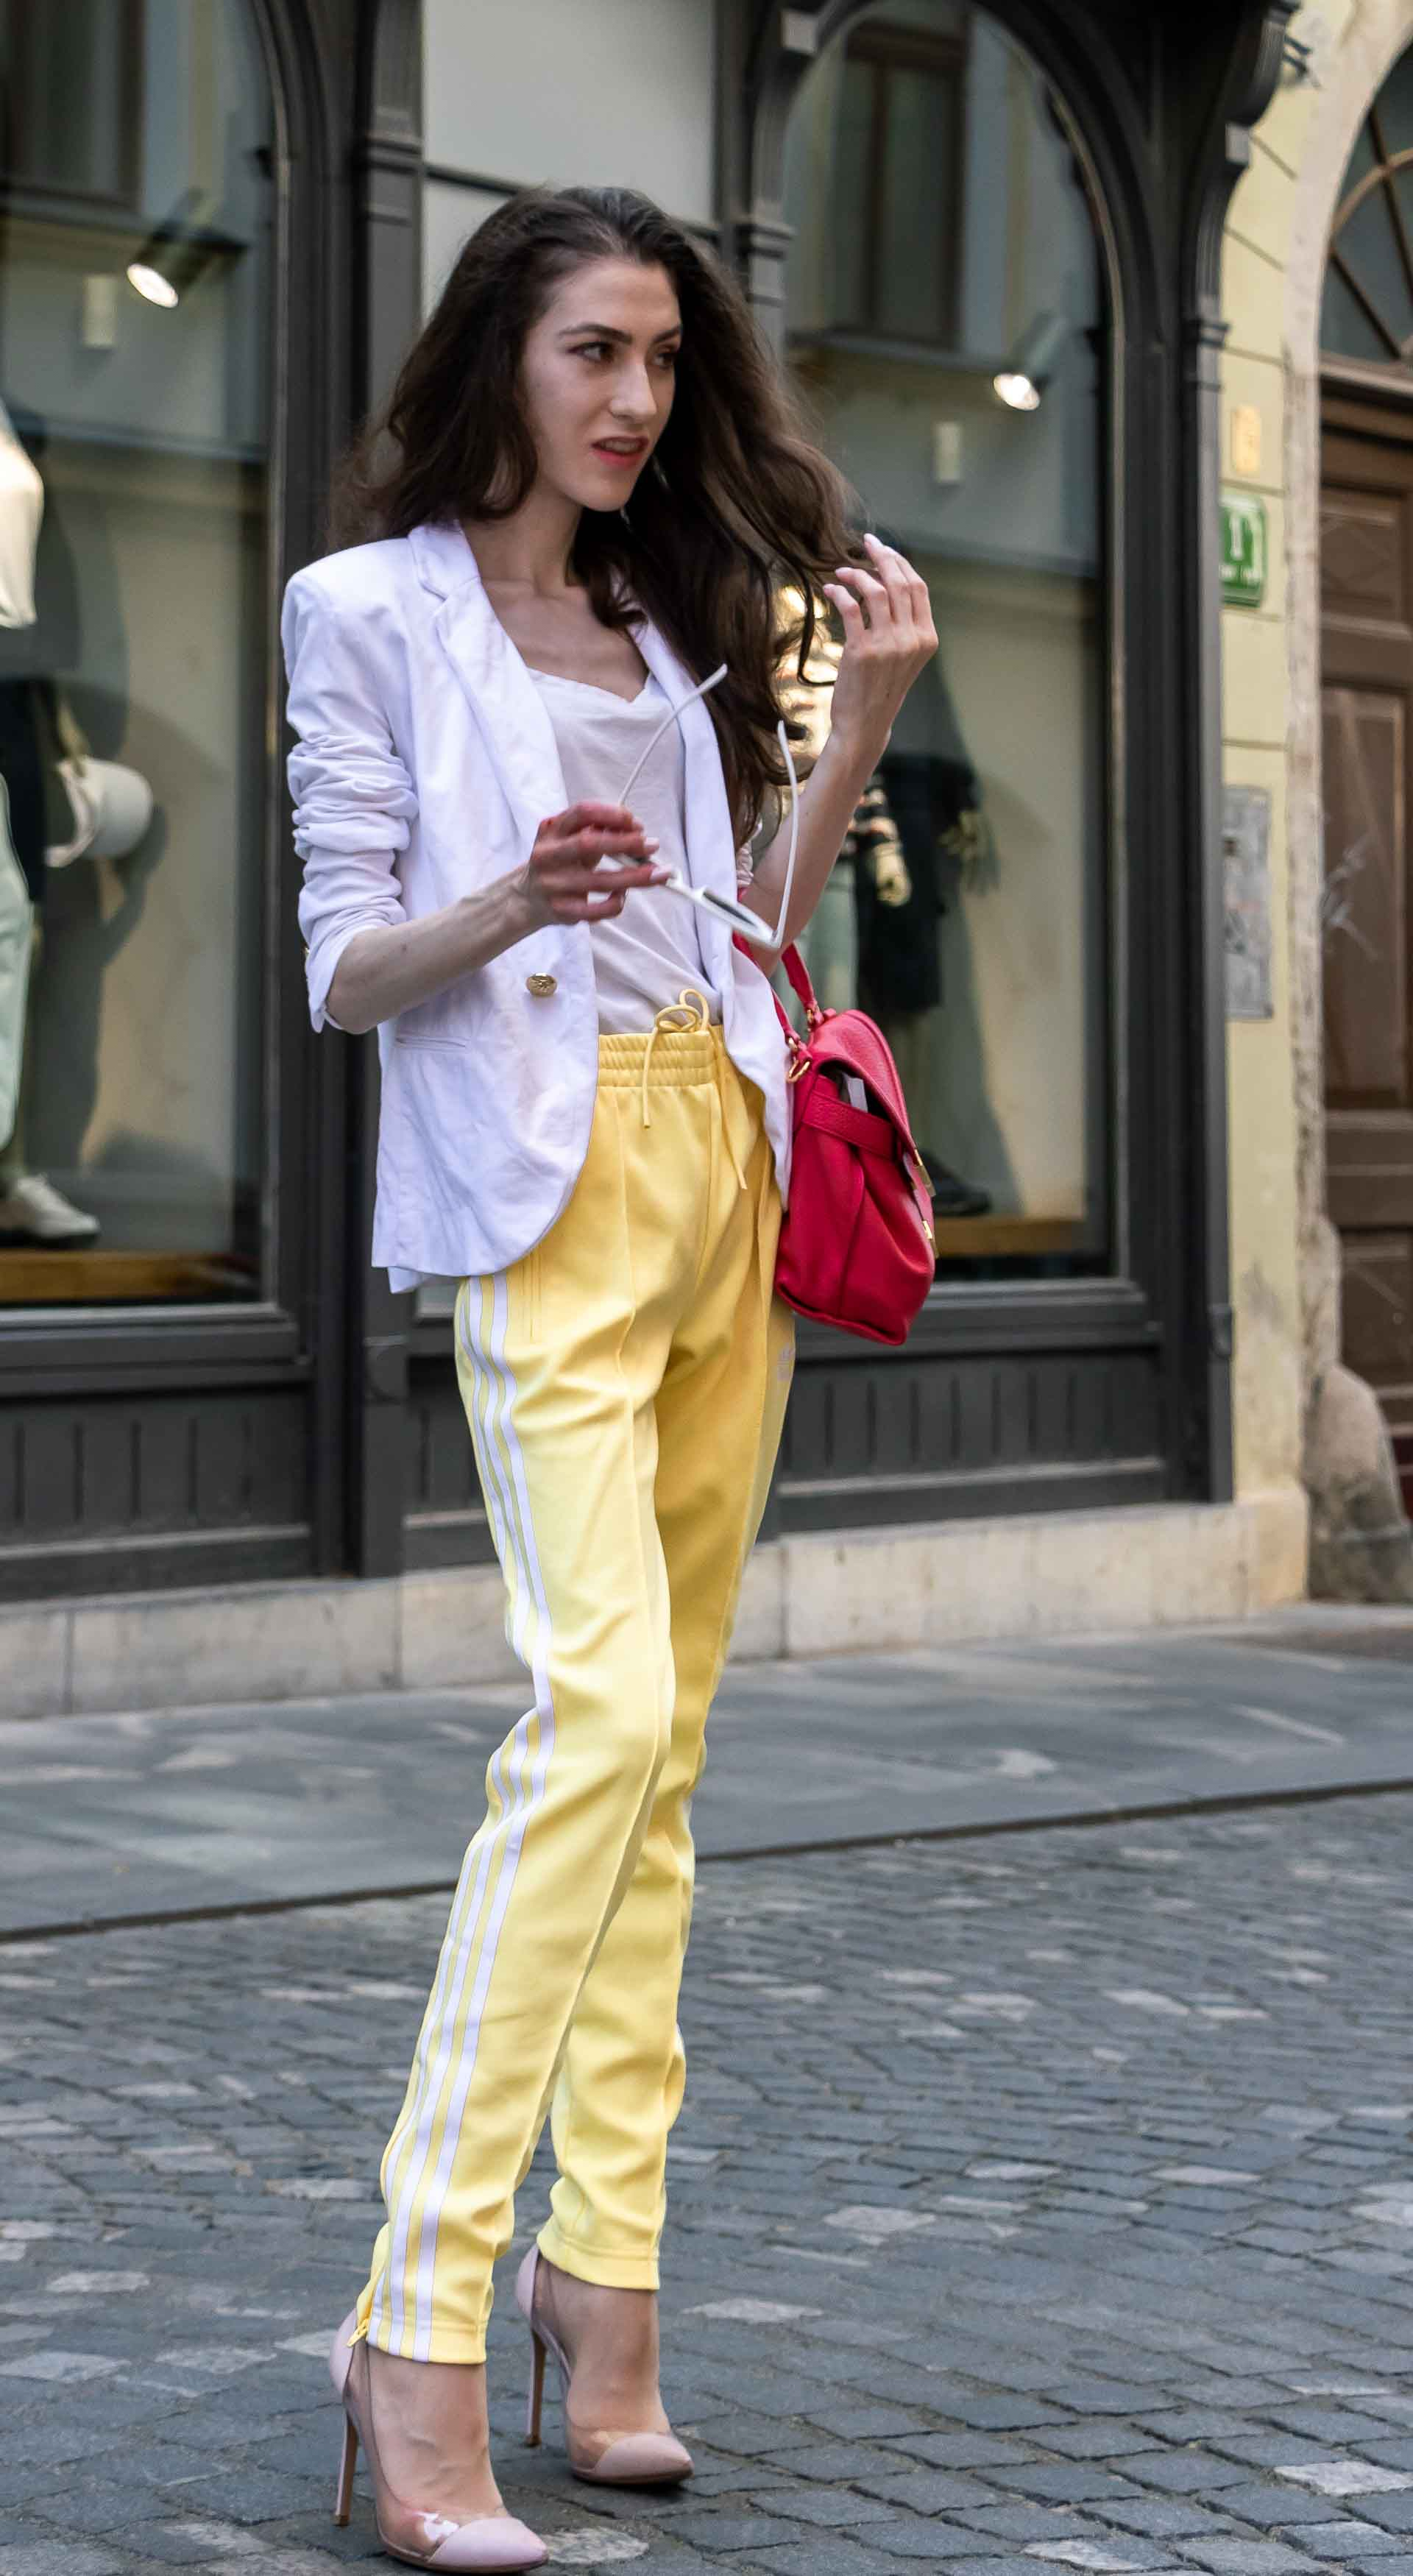 Veronika Lipar Fashion Editor of Brunette from Wall Street wearing white blazer, white H&M t-shirt, yellow Addidas track pants, See by Chloé pink top handle bag, Adam Selman x Le Specs white cat eye Lolita sunglasses, pink blush Gianvito Rossi plexi pumps on the street in Ljubljana